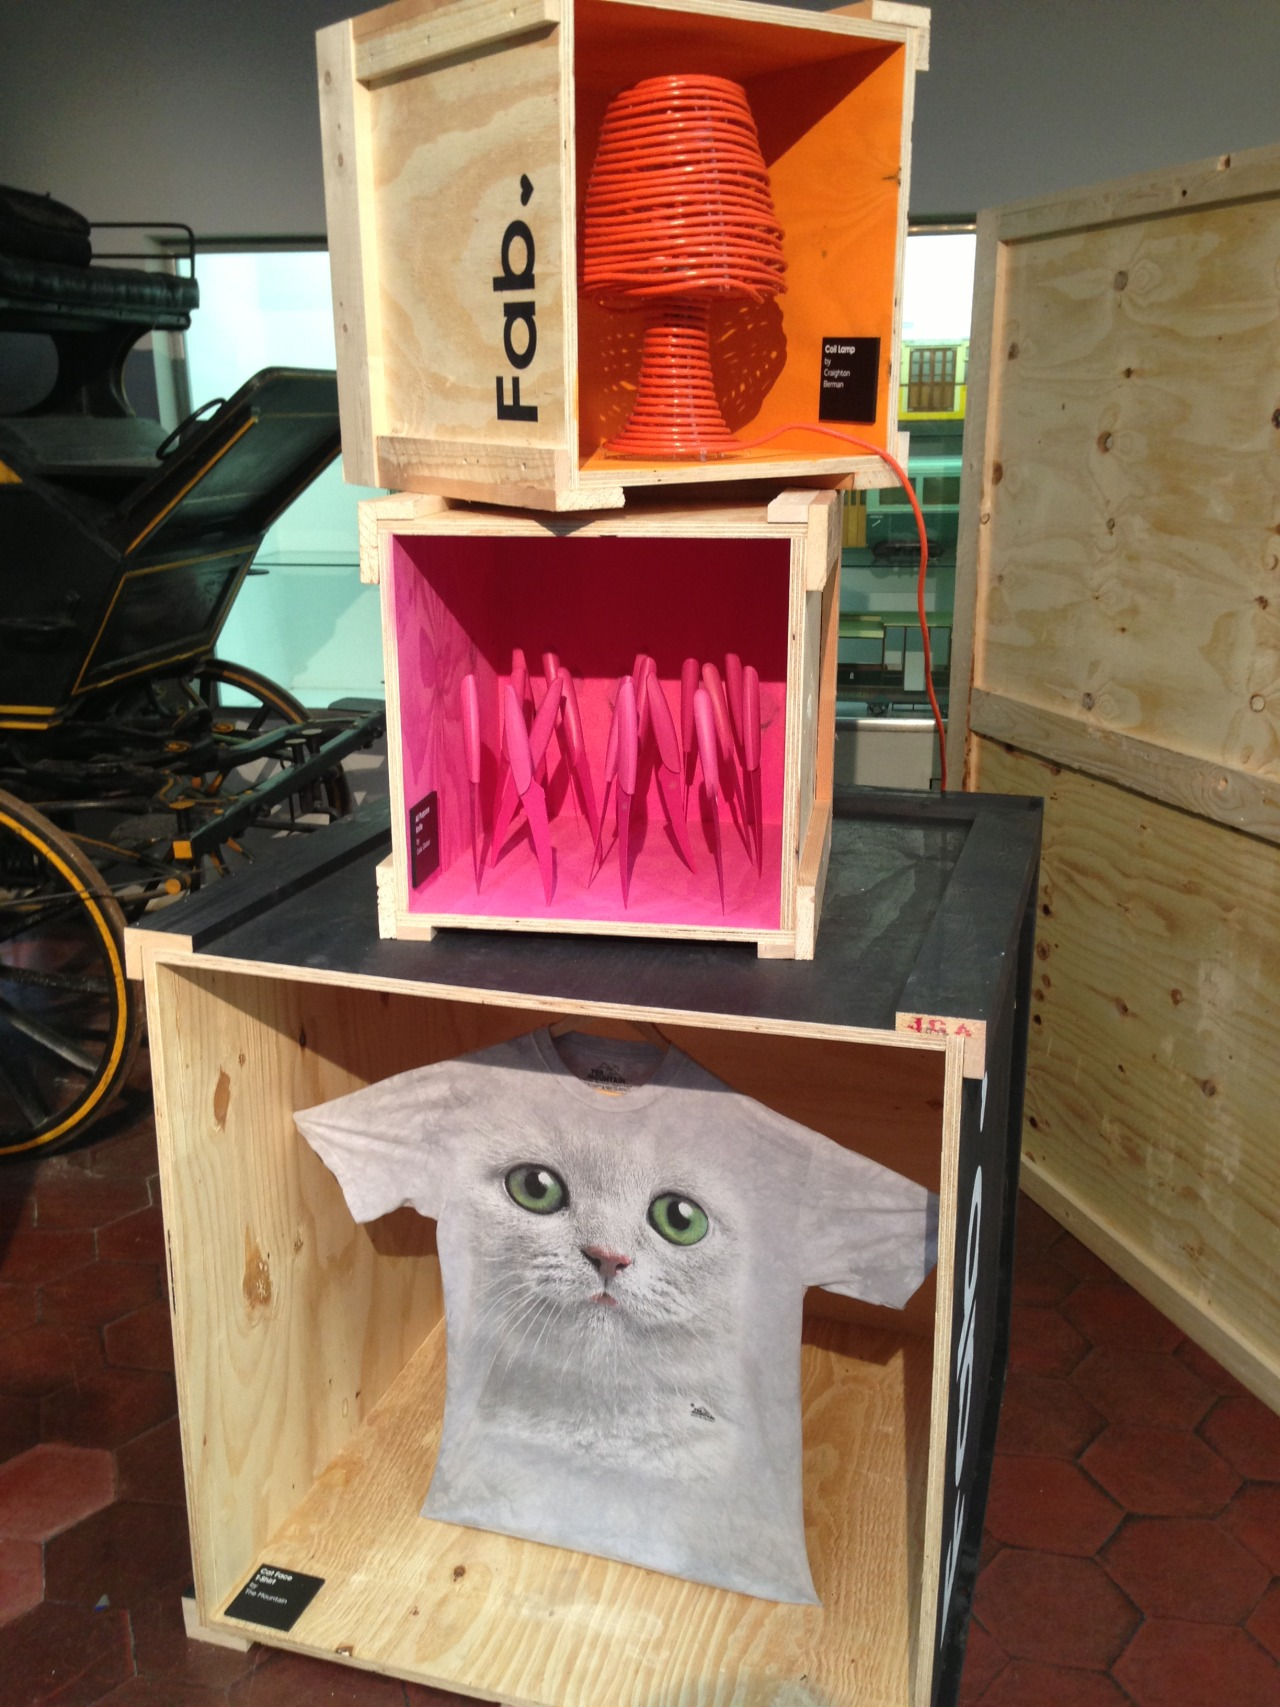 Fab at Milan Design Week: Coil lamp, pink knives, cat t-shirt. Somehow makes sense. via my homie Tim Liles